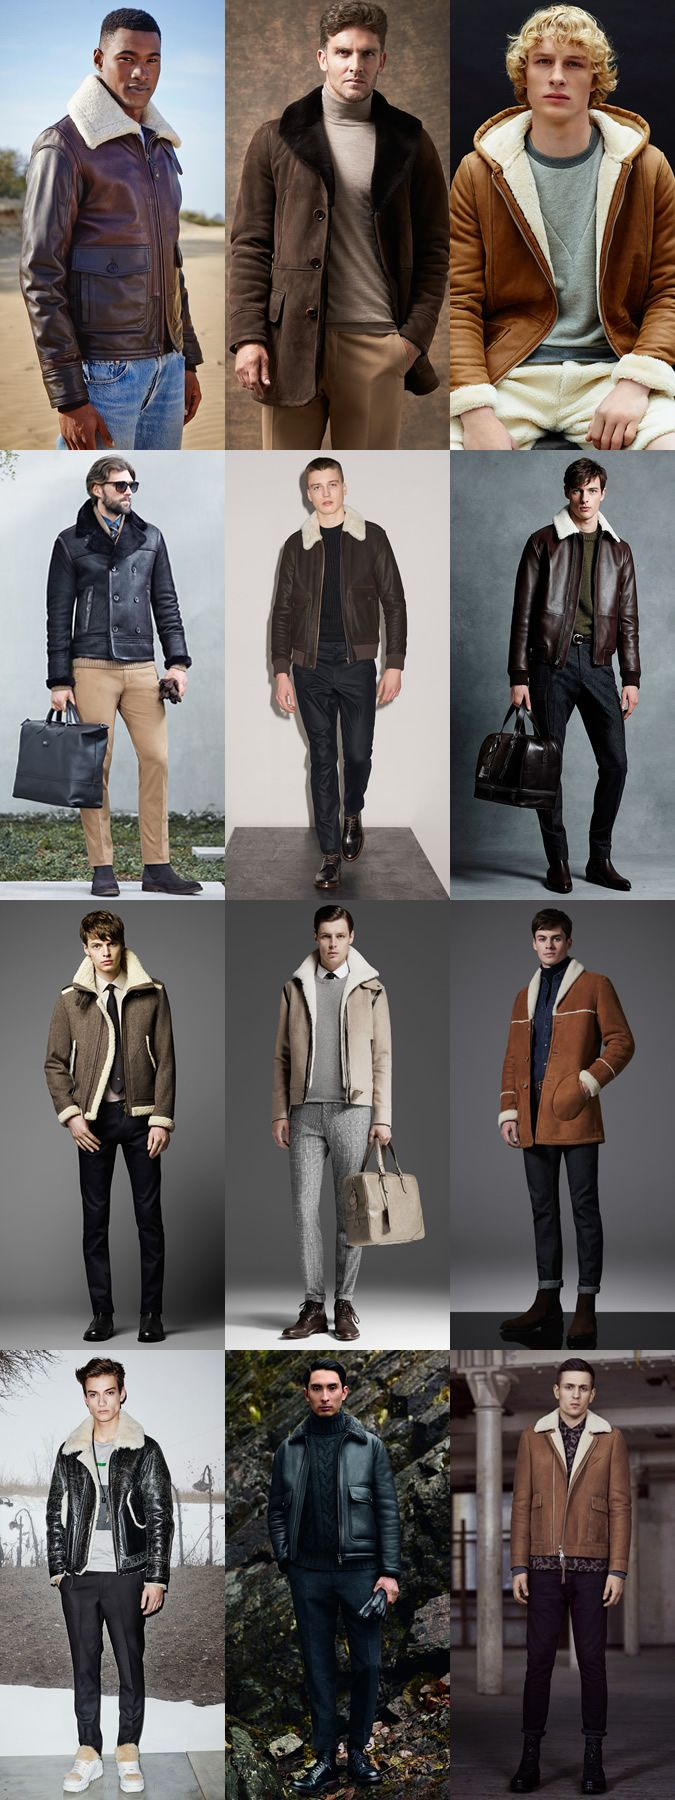 Men's 2015 Autumn/Winter Fashion Trend Preview: Shearling Outerwear/Jackets …